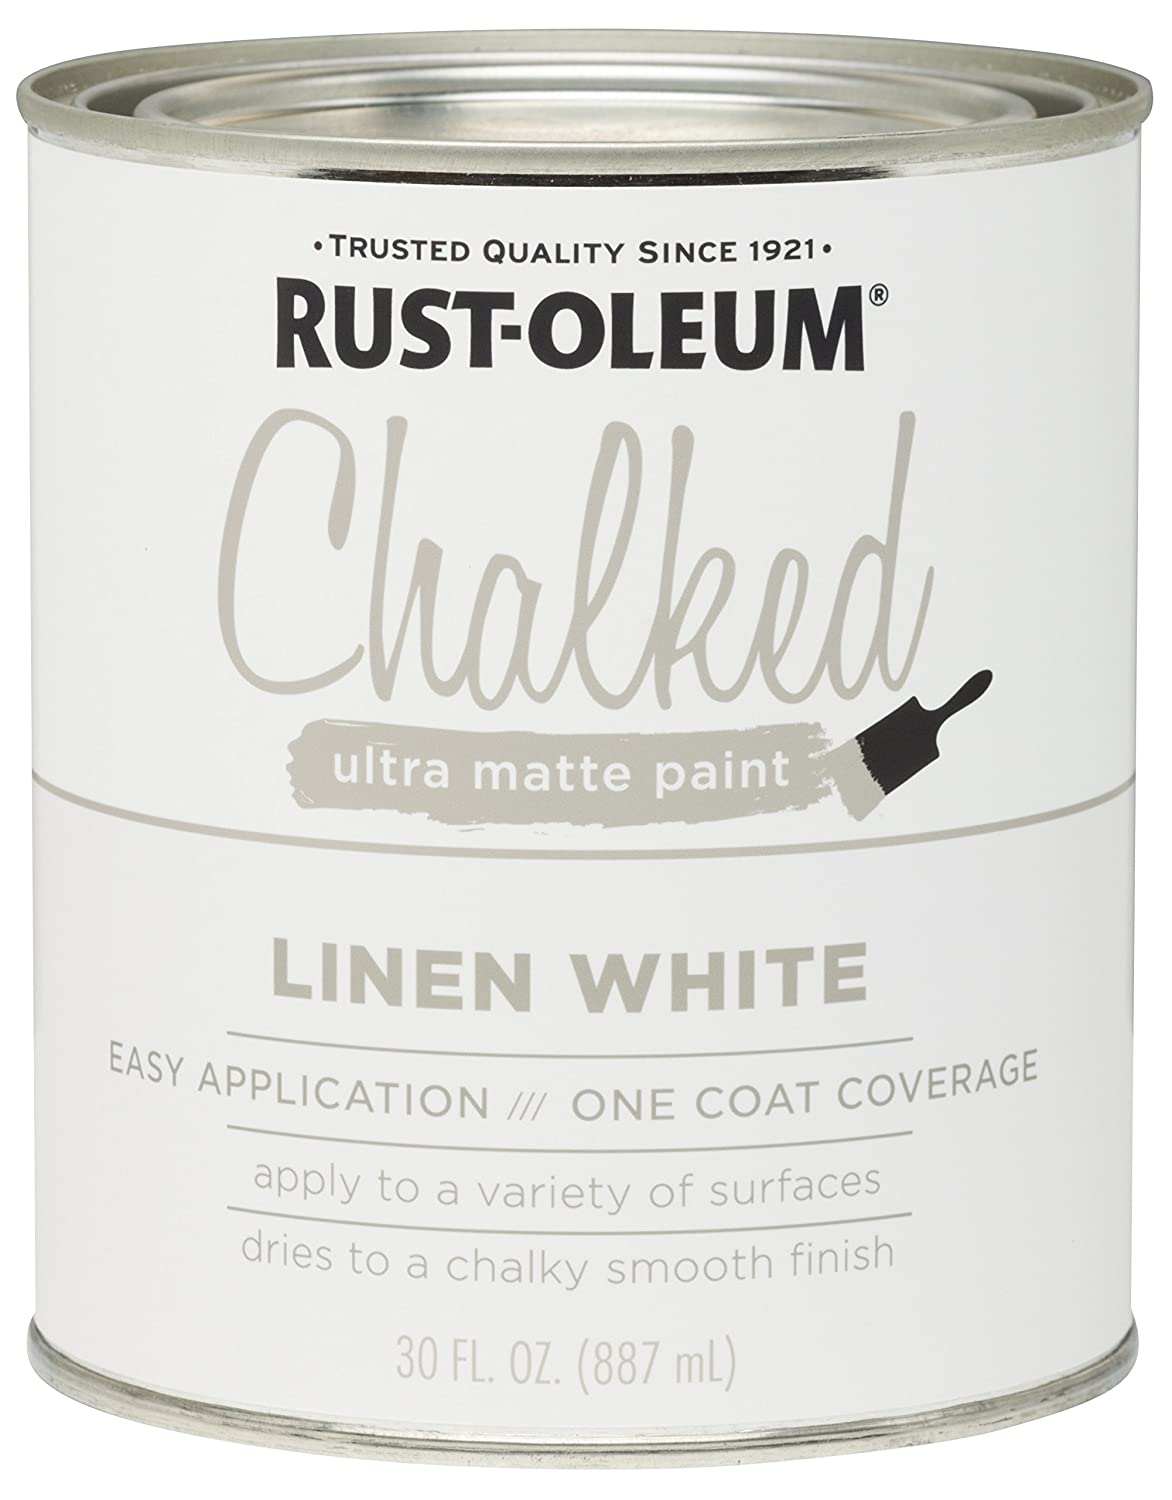 Rust Oleum 285140 Ultra Matte Interior Chalked Paint 30 Oz, Linen White